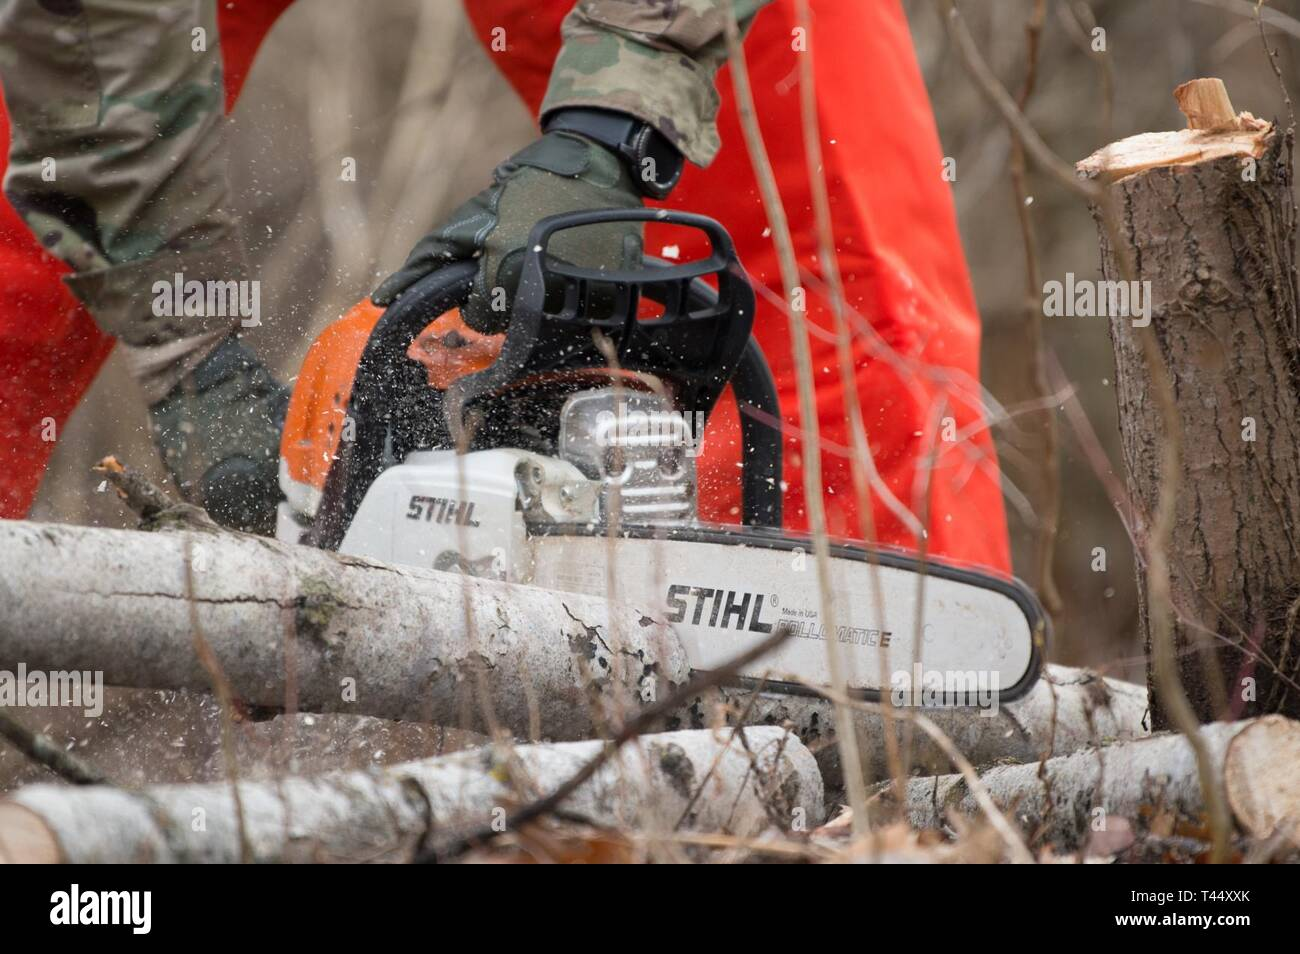 A Soldier cuts into a log with a chainsaw during training at Youngstown Local Training Area, Feb. 24, 2019. The training team was composed of New York Army National Guard and New York Guard Soldiers. They trained on how to use the equipment properly and safely. These Soldiers are just a few of more than 250 Soldiers and Airmen that are deployed to Western New York for debris clearing missions in support of Operation February Winter Storm. - Stock Image